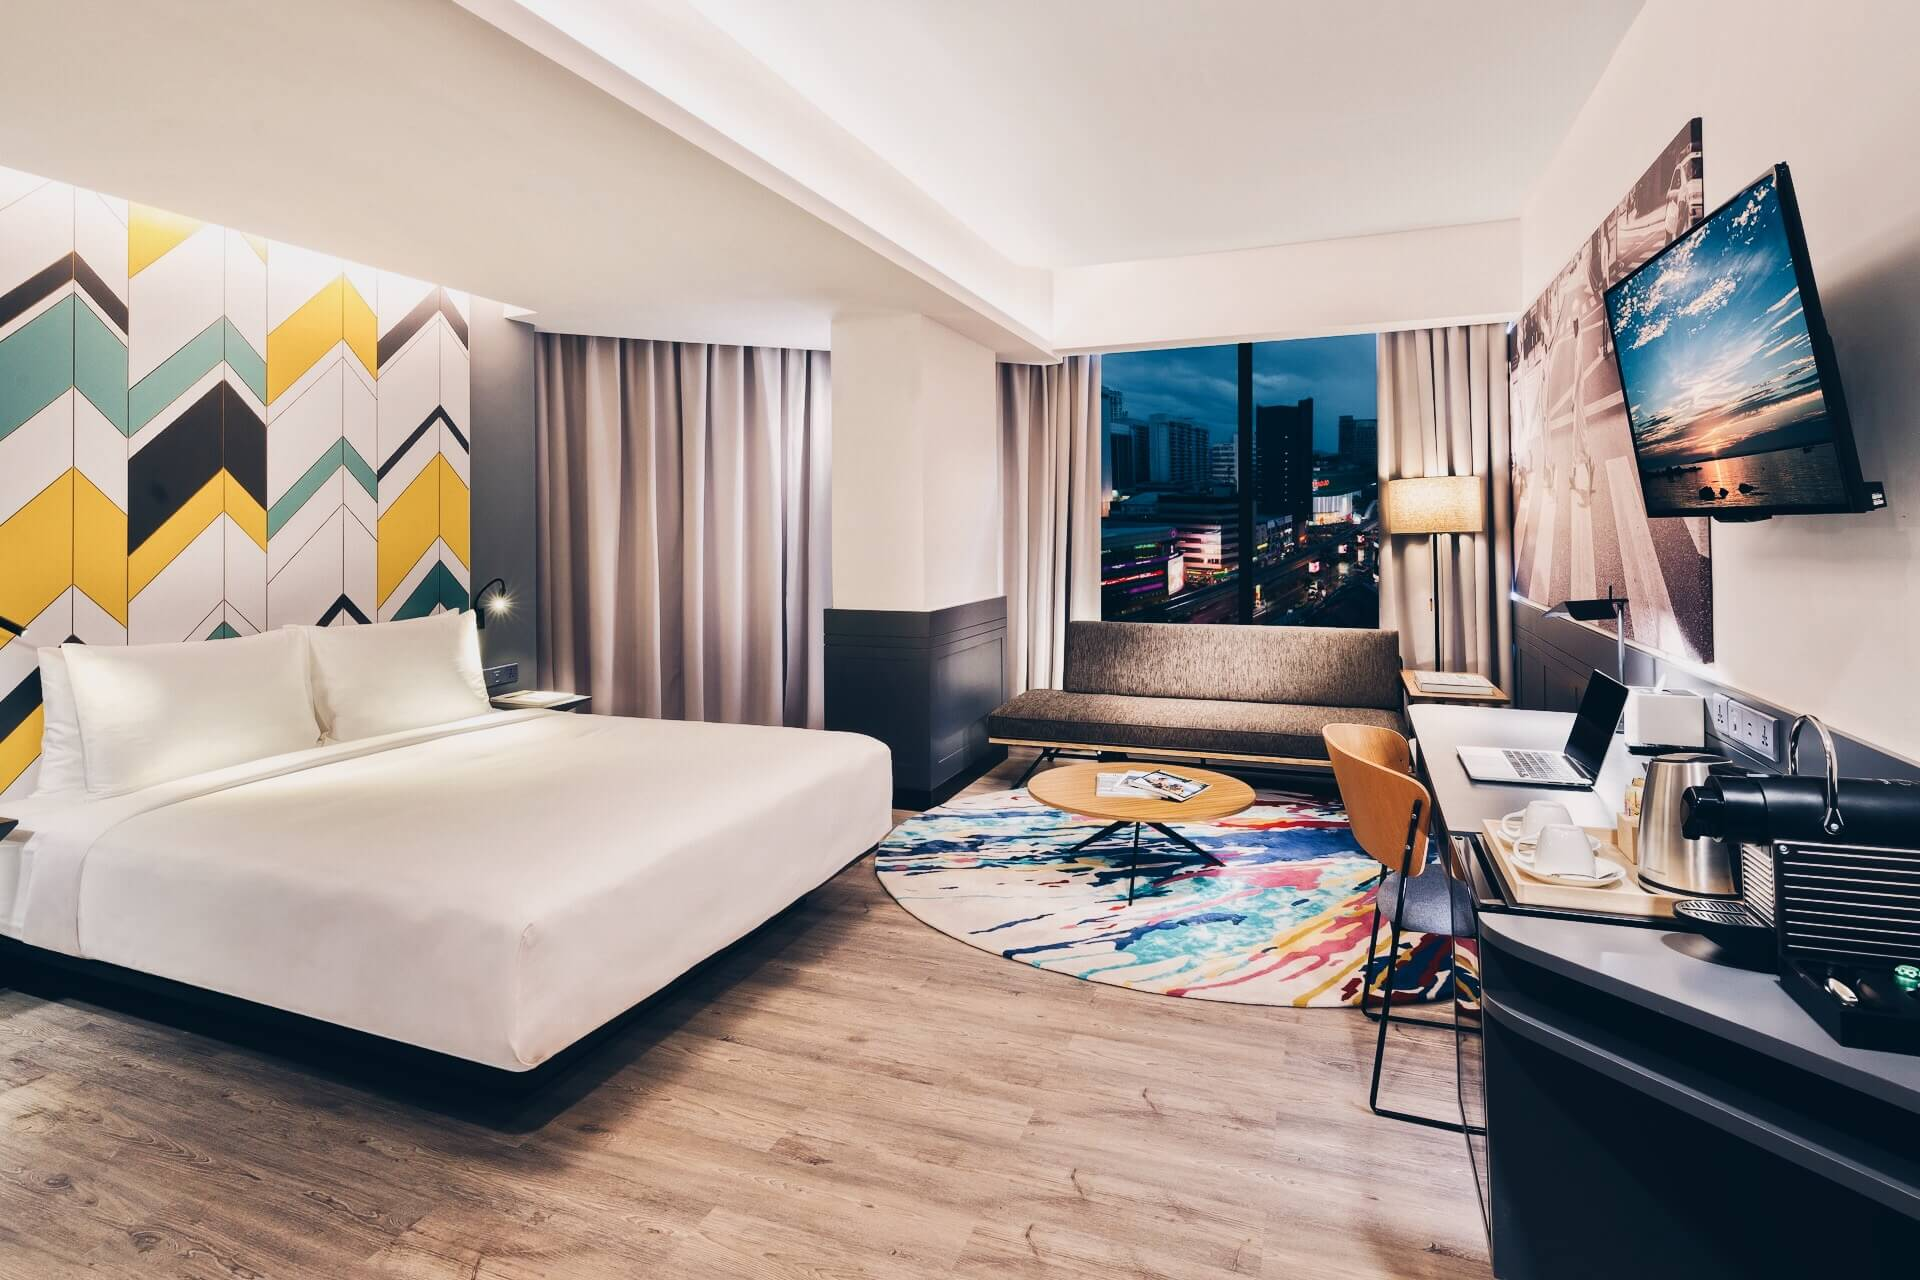 Spacious & chic Deluxe room with city views at KL Journal Hotel